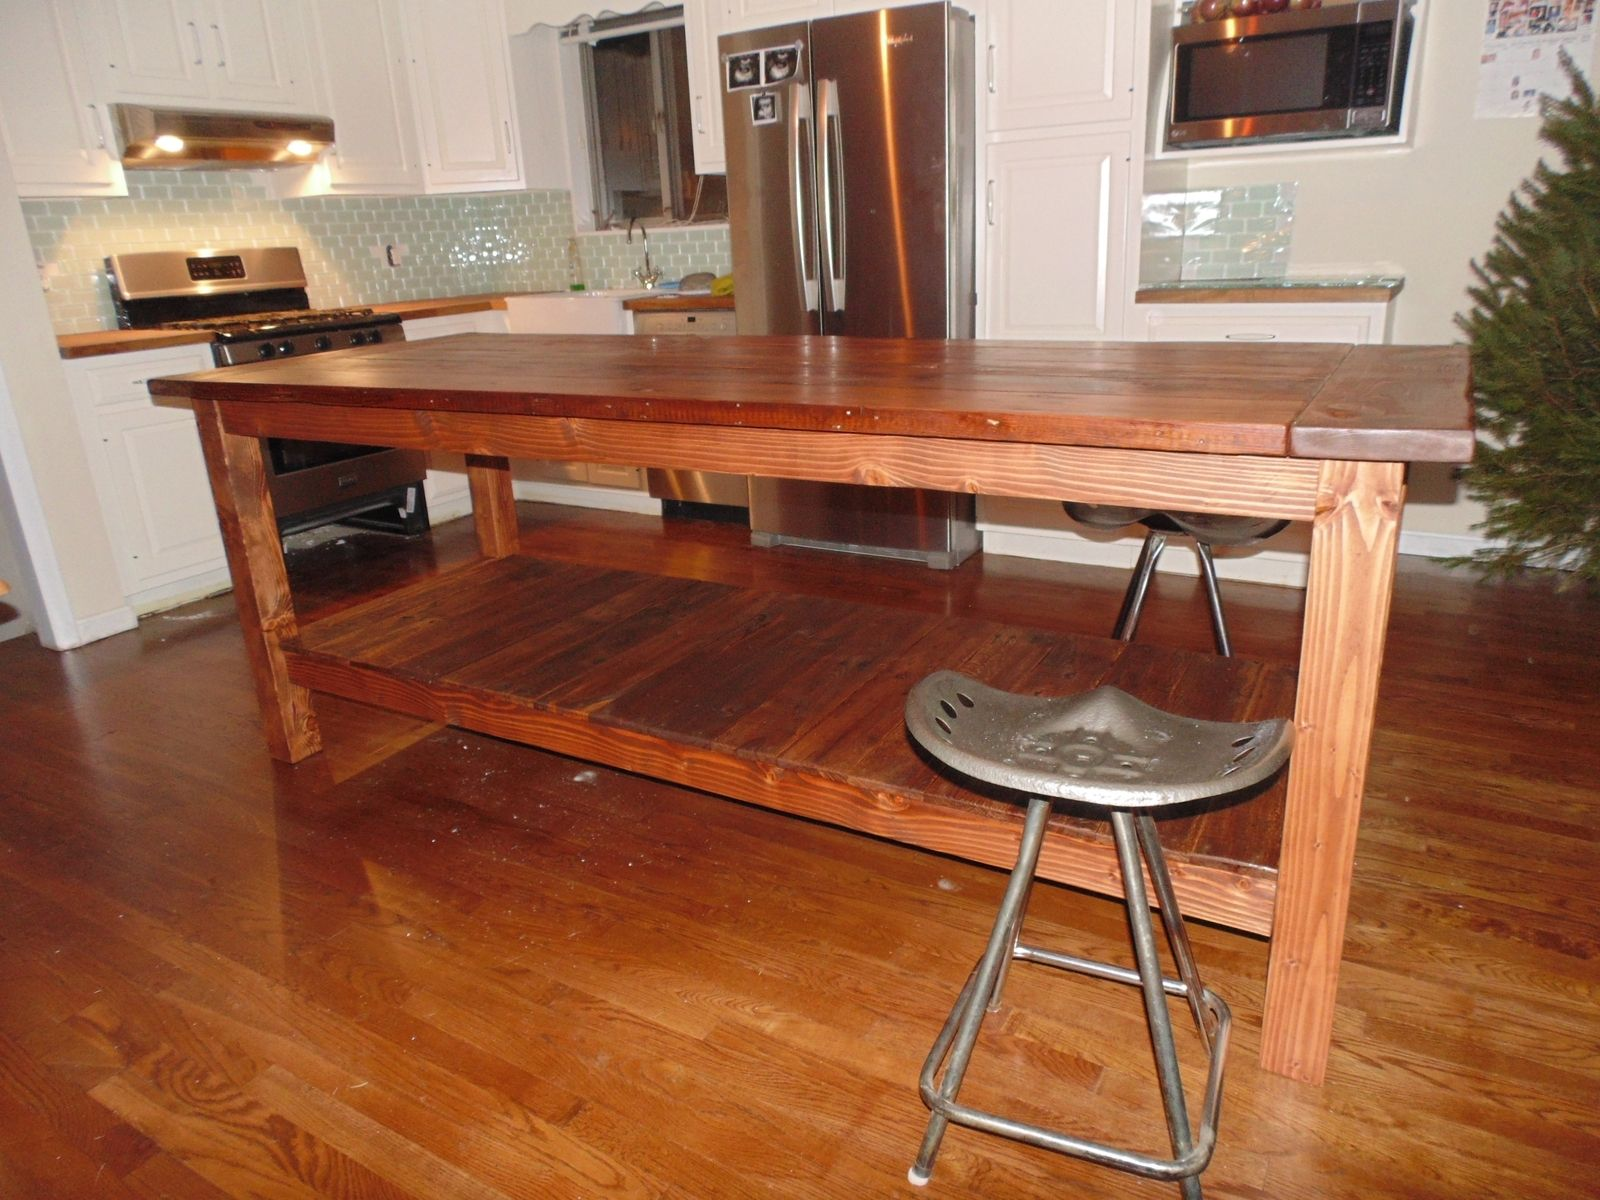 Hand crafted reclaimed wood farmhouse kitchen island by for Custom made kitchen islands